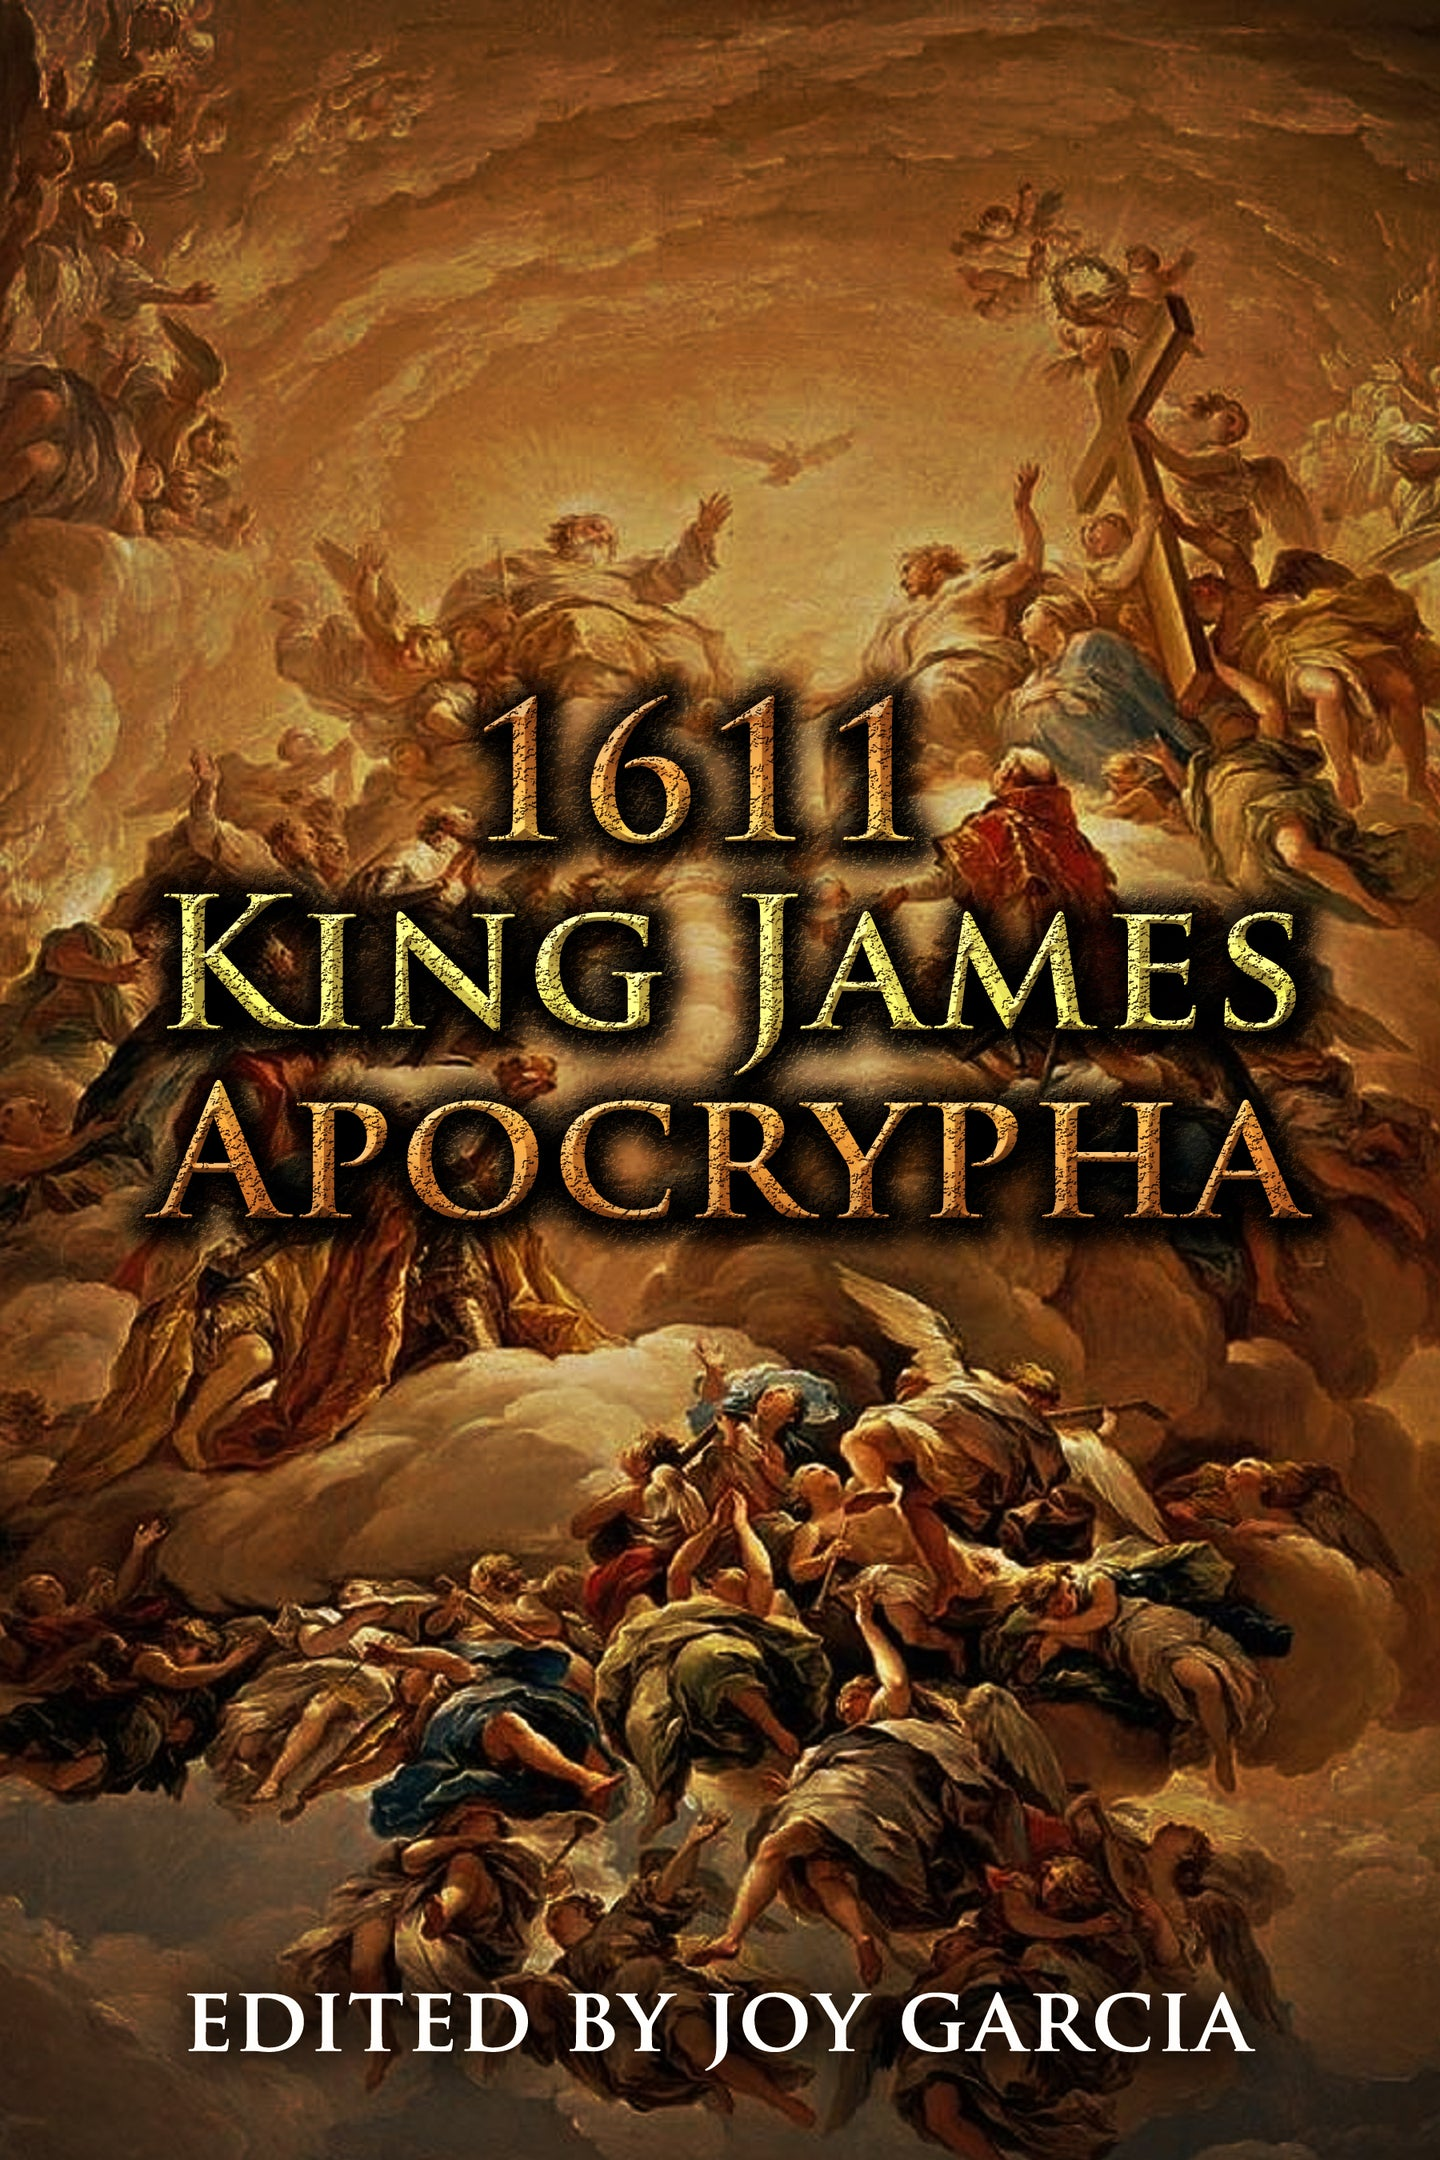 The 1611 King James Apocrypha